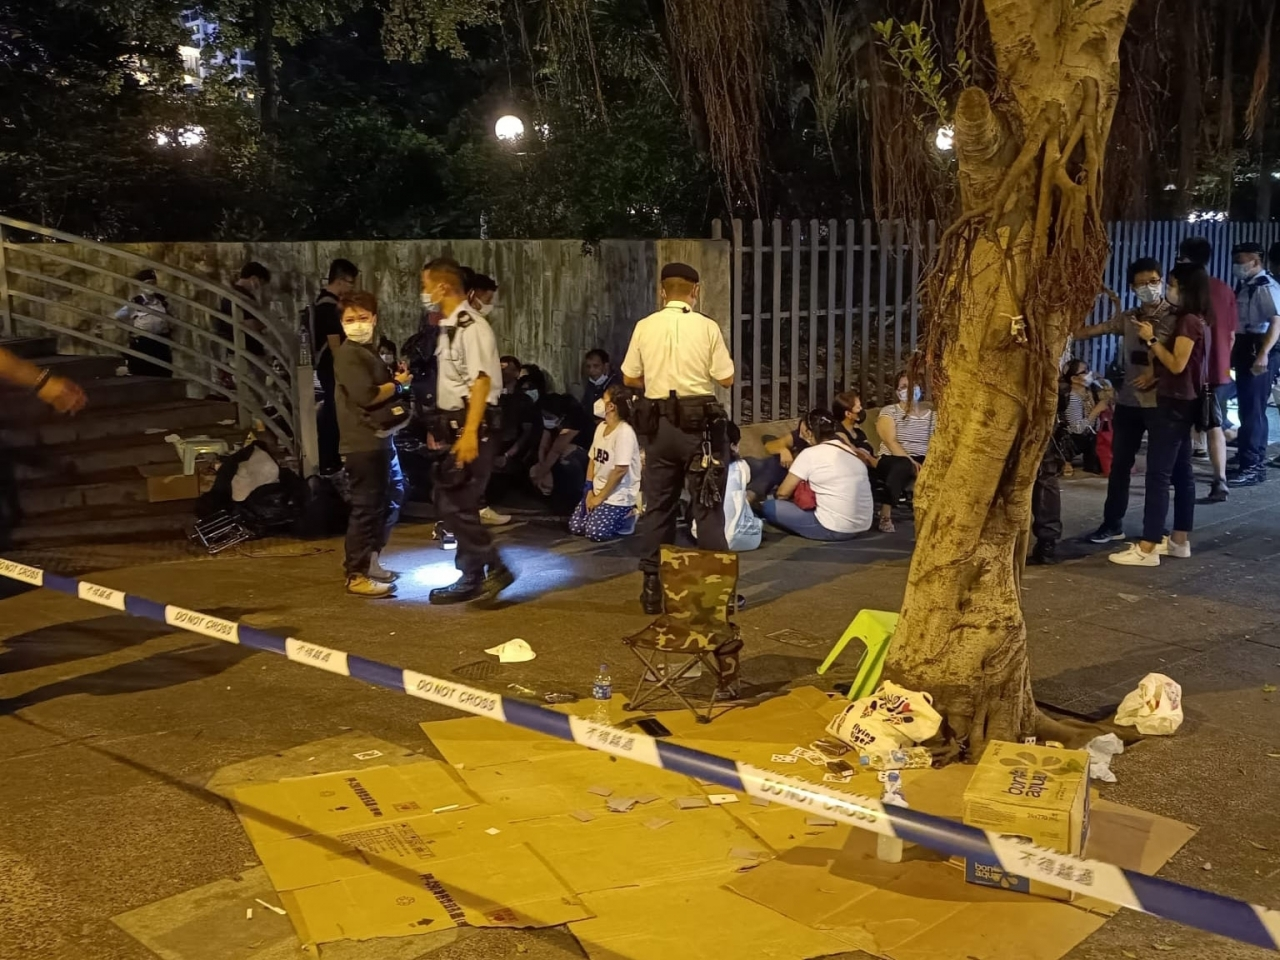 Police arrest 21 in Central for illegal gambling